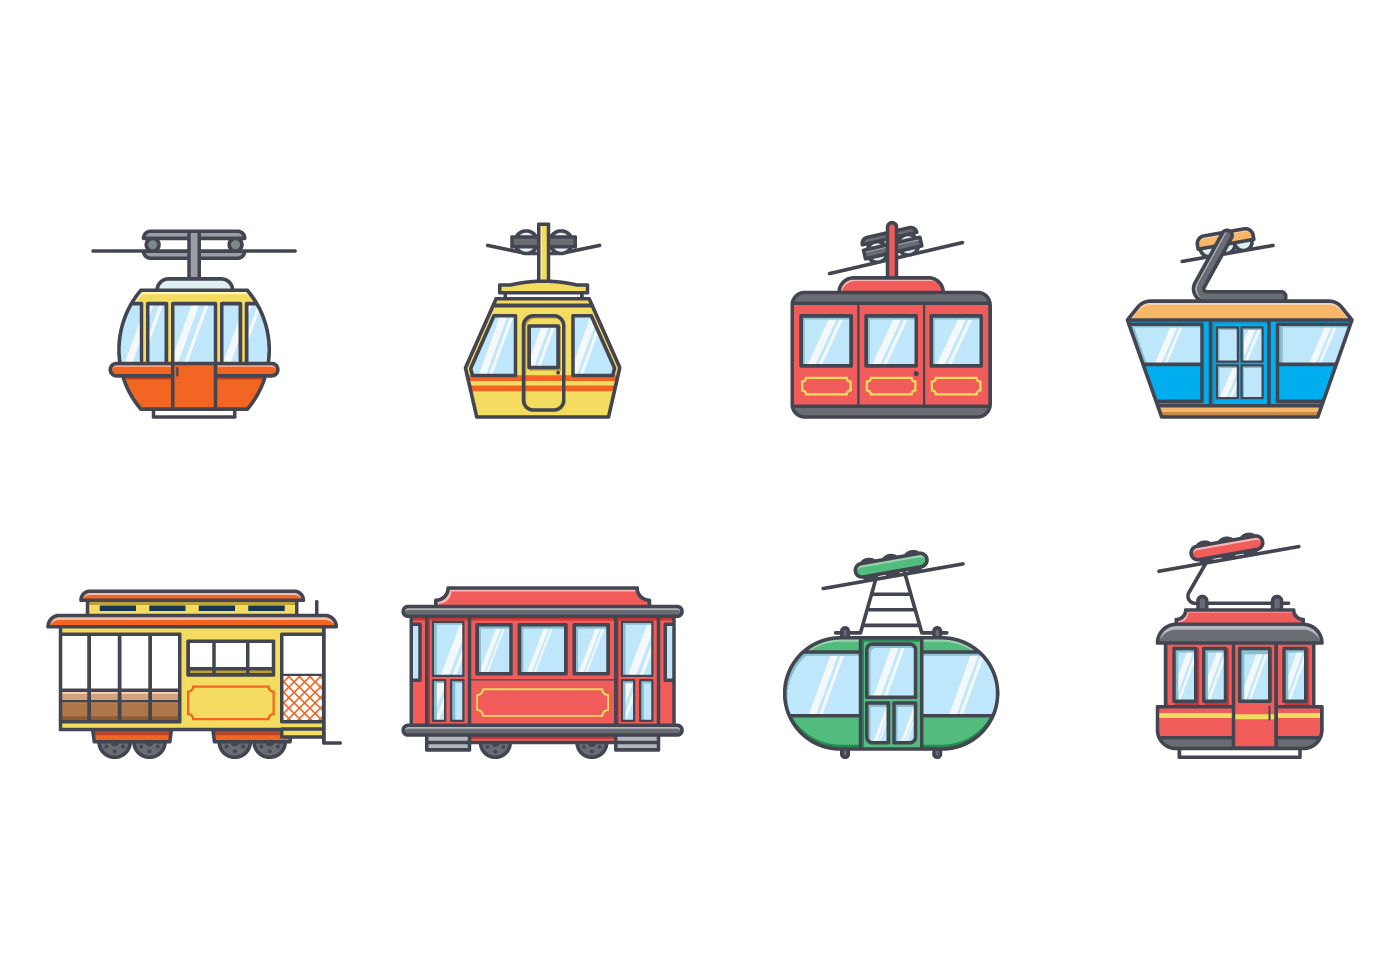 ... Cable Car Vector - Download Free Vector Art, Stock Graphics & Images